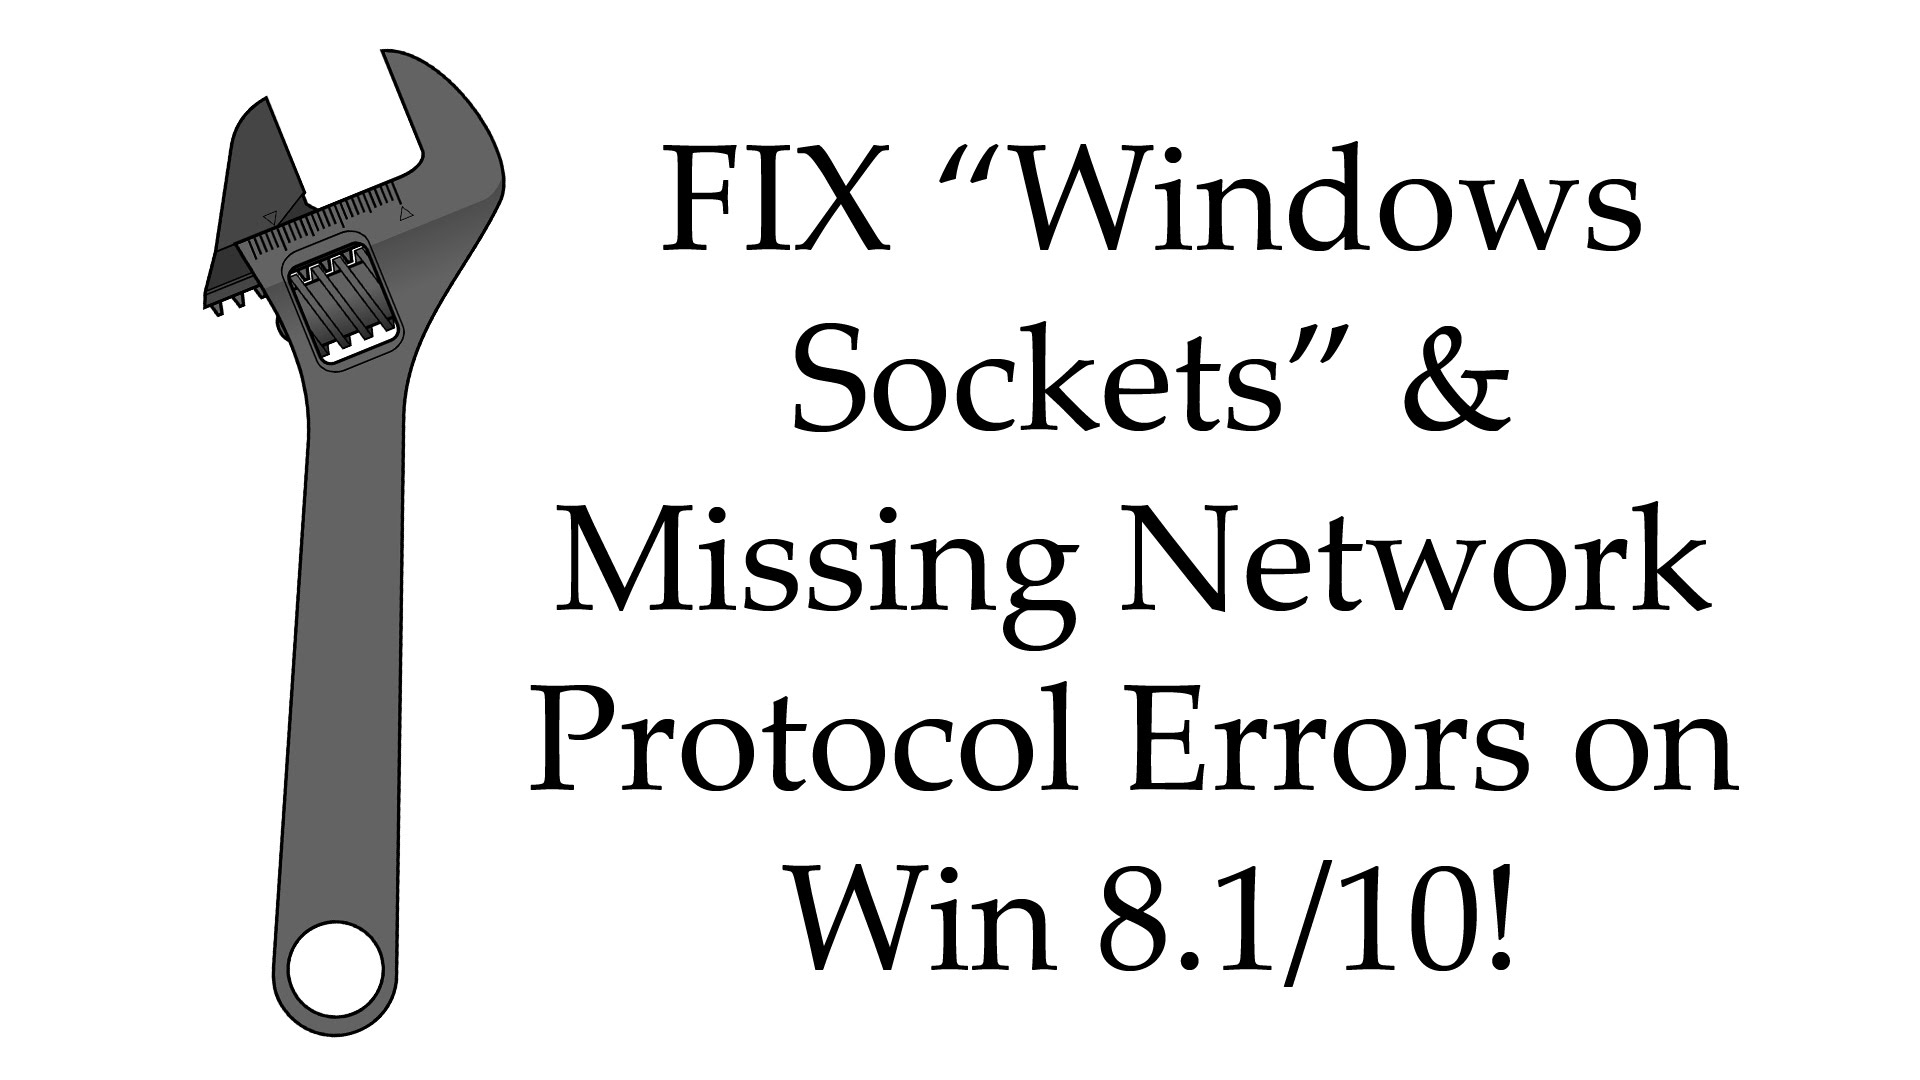 Windows sockets registry entries required for network connectivity are missing FIX